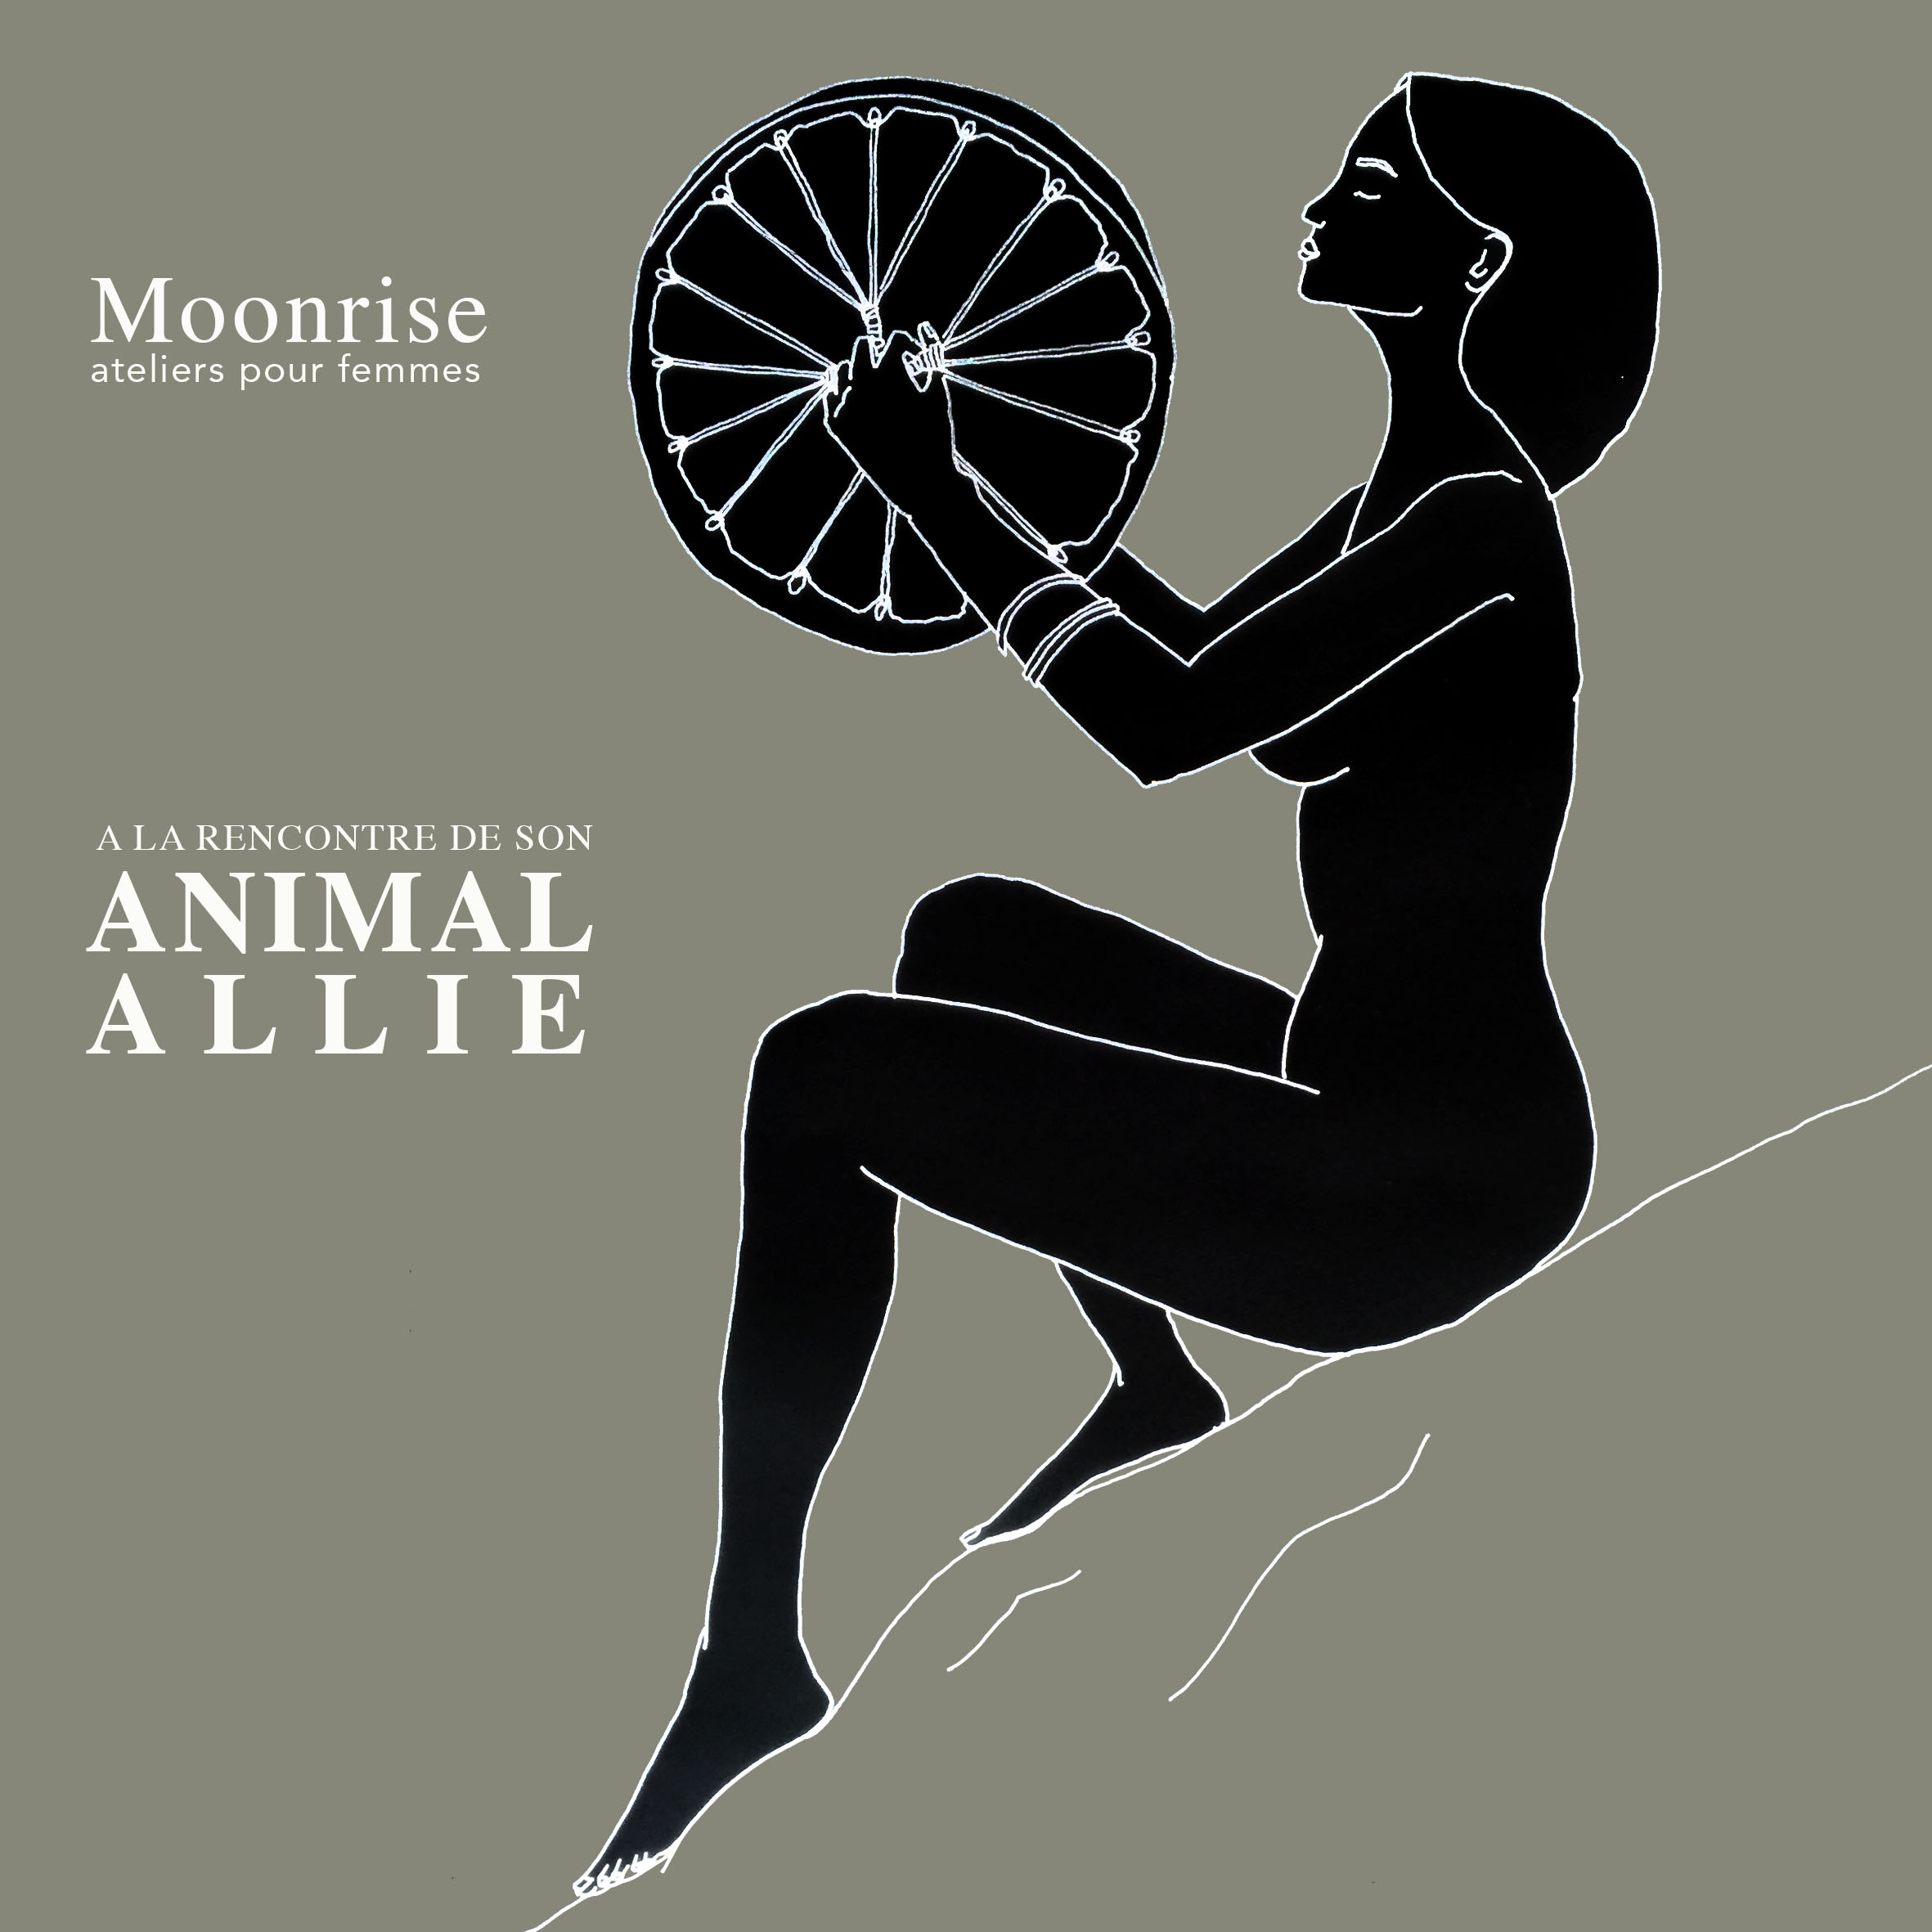 Moonrise_Atelier_Affiche_2019_AnimalAllie_01.jpg